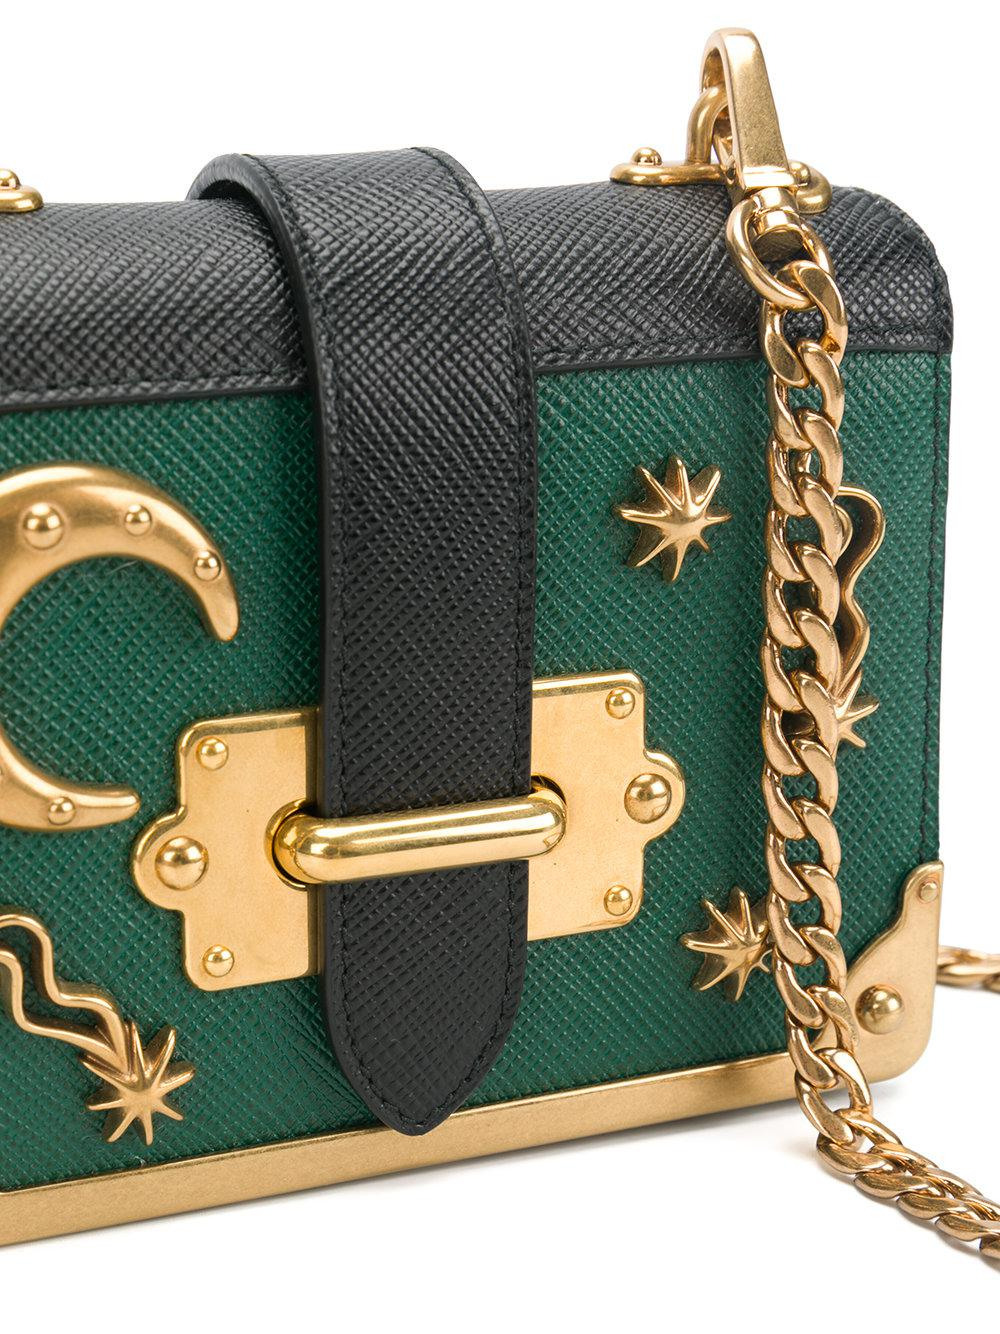 53b57bce7ef1 Lyst - Prada Cahier Mini Moon And Stars Bag in Green